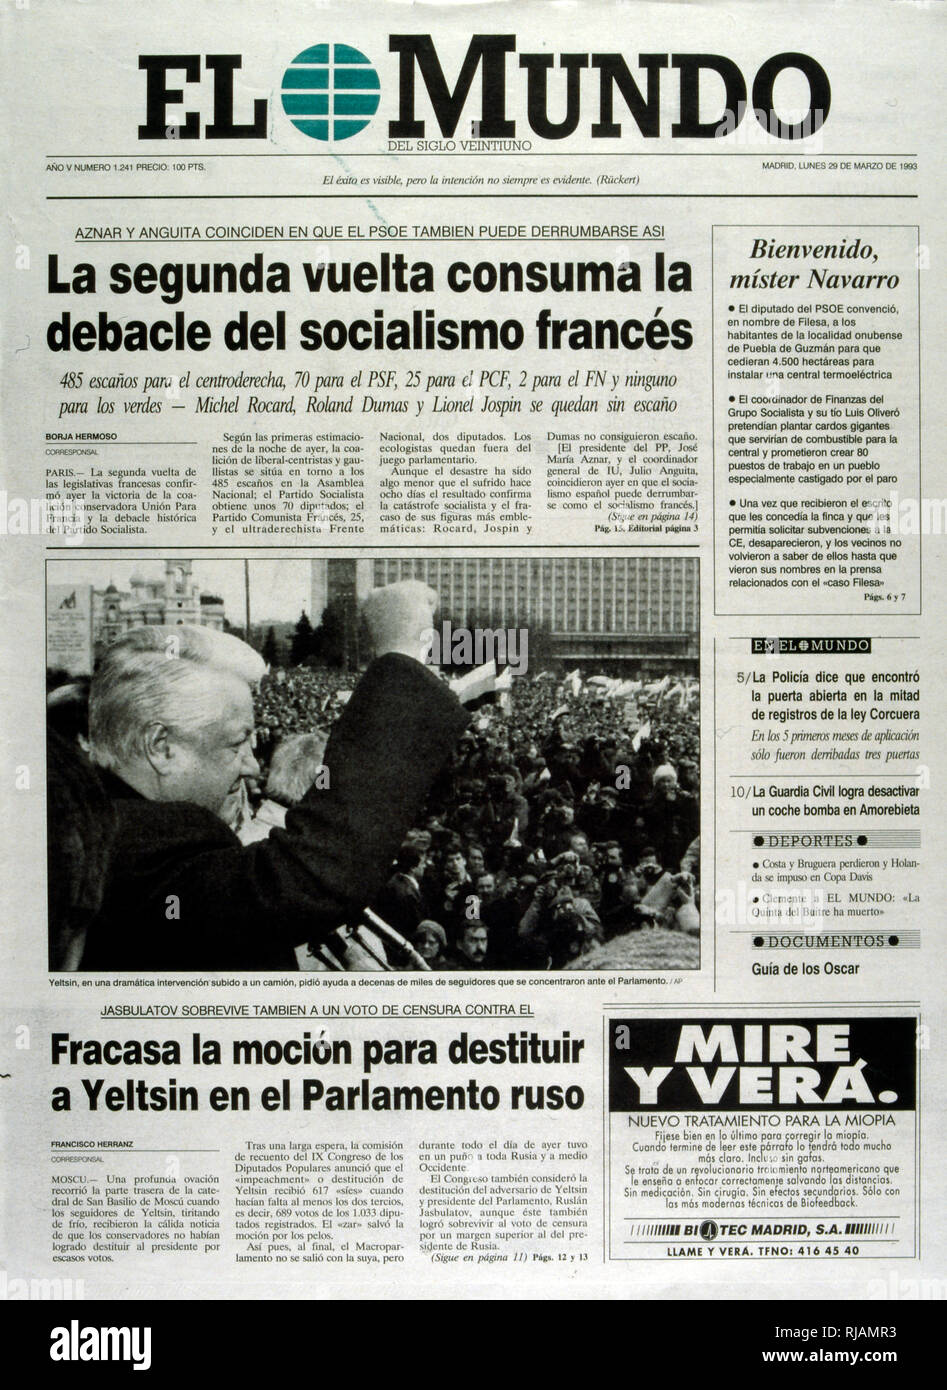 Photograph in a Spanish Newspaper showing Boris Yeltsin, on a tank to defy the August coup in Russia, 1991. Boris Nikolayevich Yeltsin (1931 - 2007) was a Soviet and Russian politician and the first President of the Russian Federation, serving from 1991 to 1999 - Stock Image